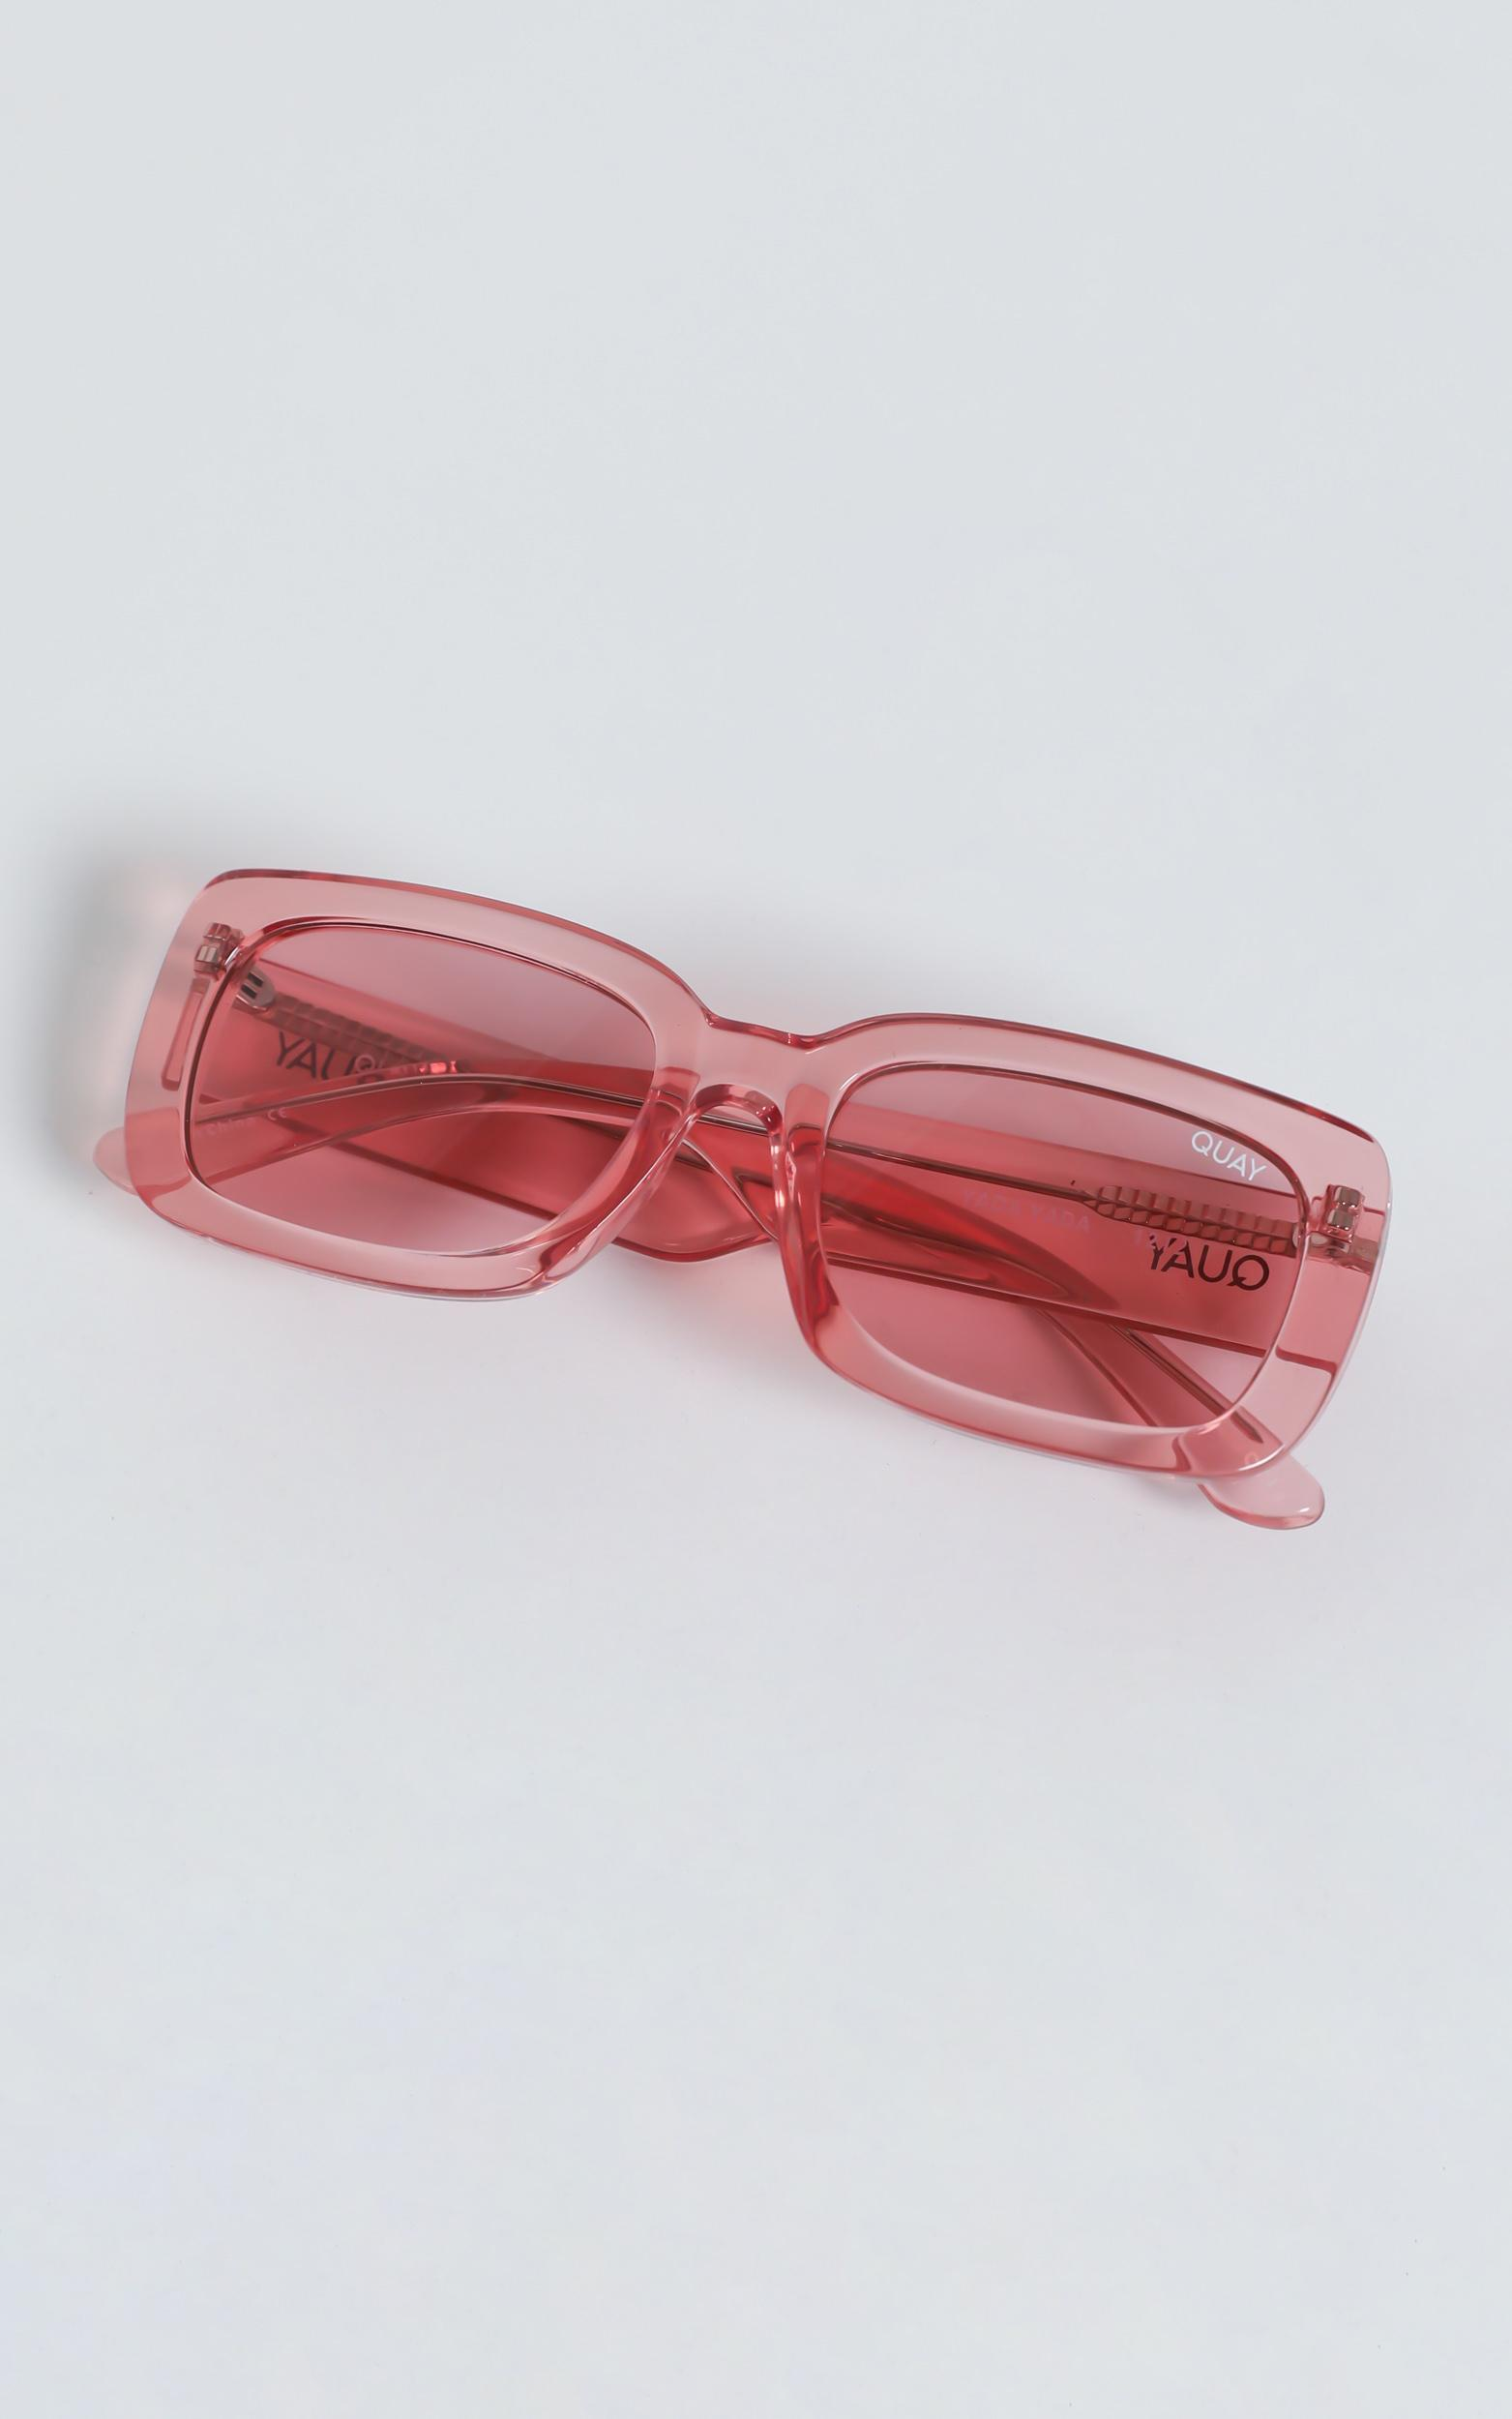 Quay - Yada Yada Sunglasses in Coral / Coral, , hi-res image number null